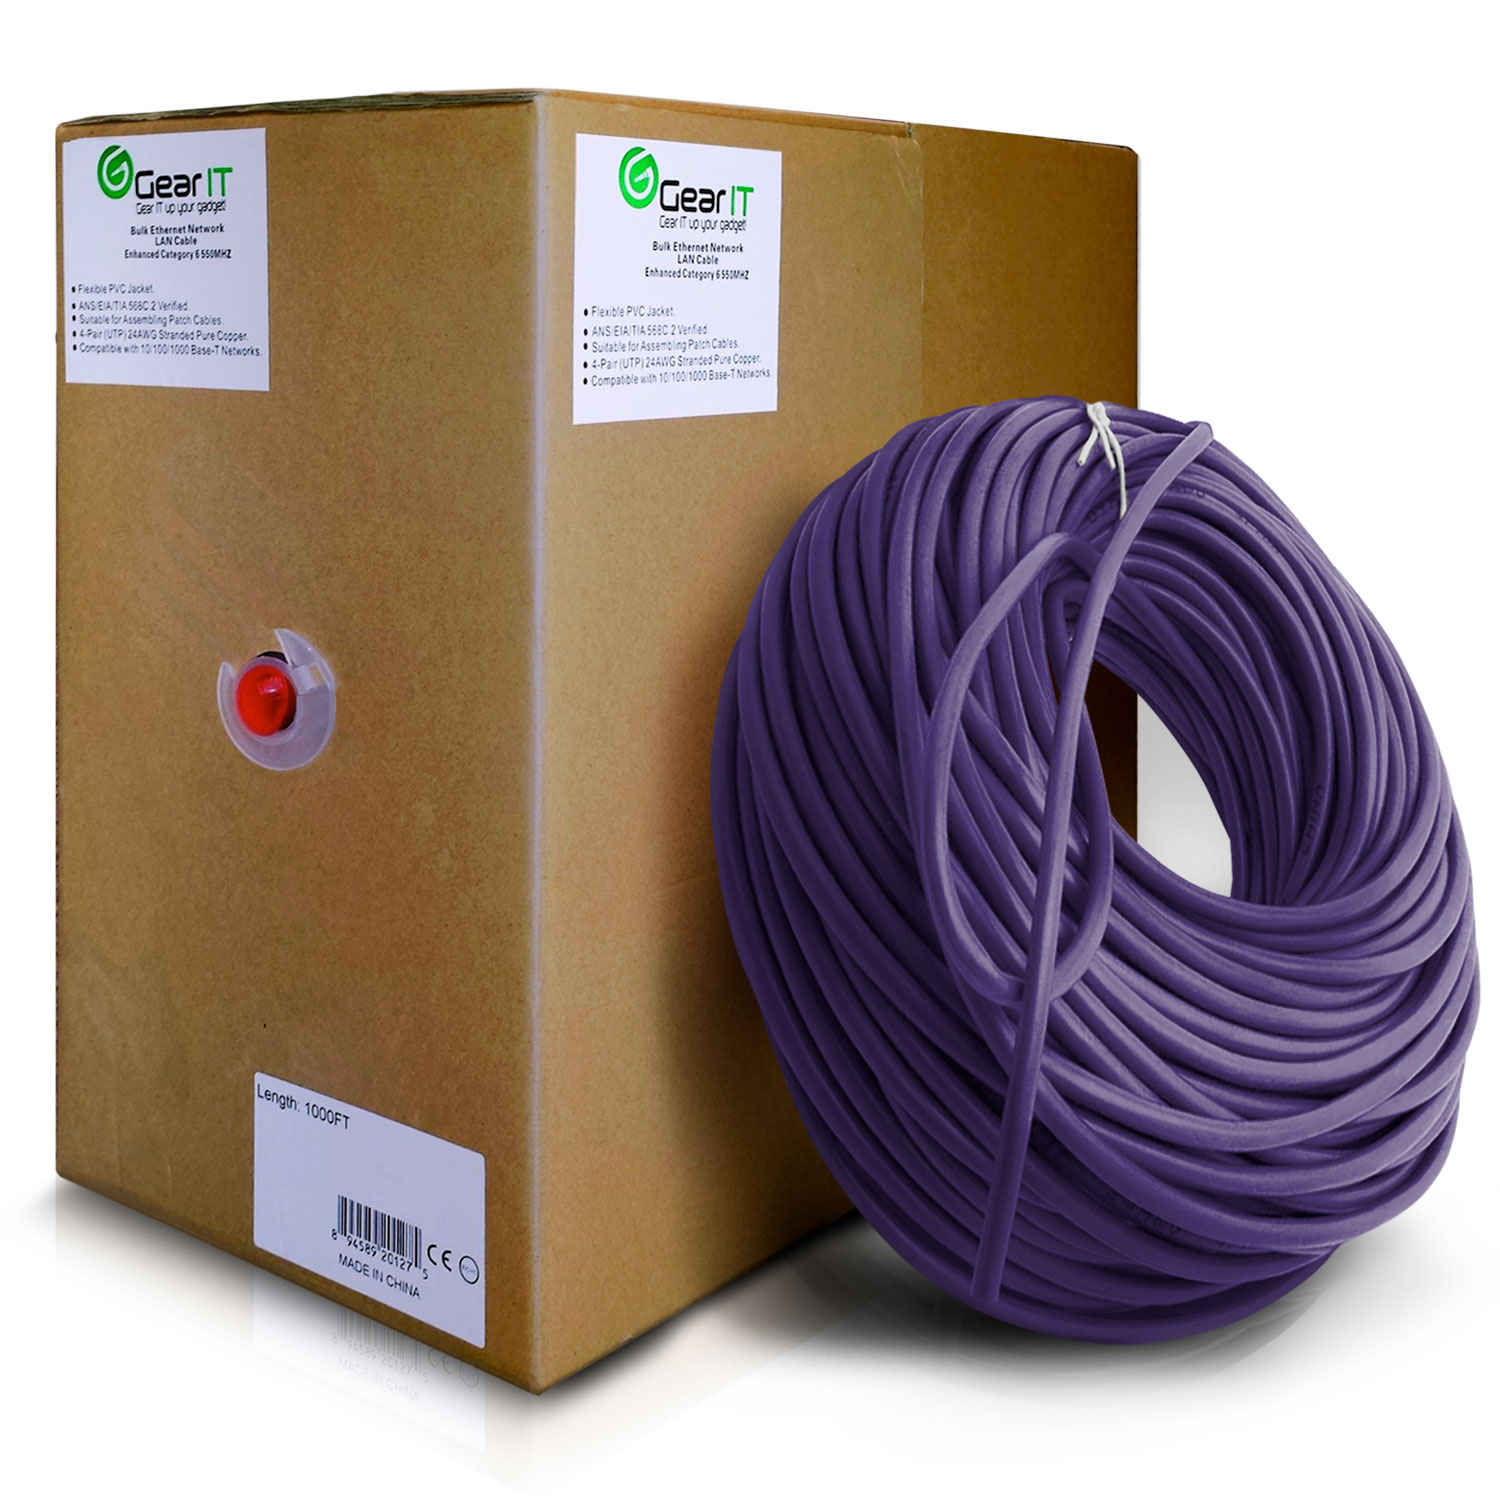 Cable Or Existing Cat 5 Compliant Building Wiring Can Be Used Utp